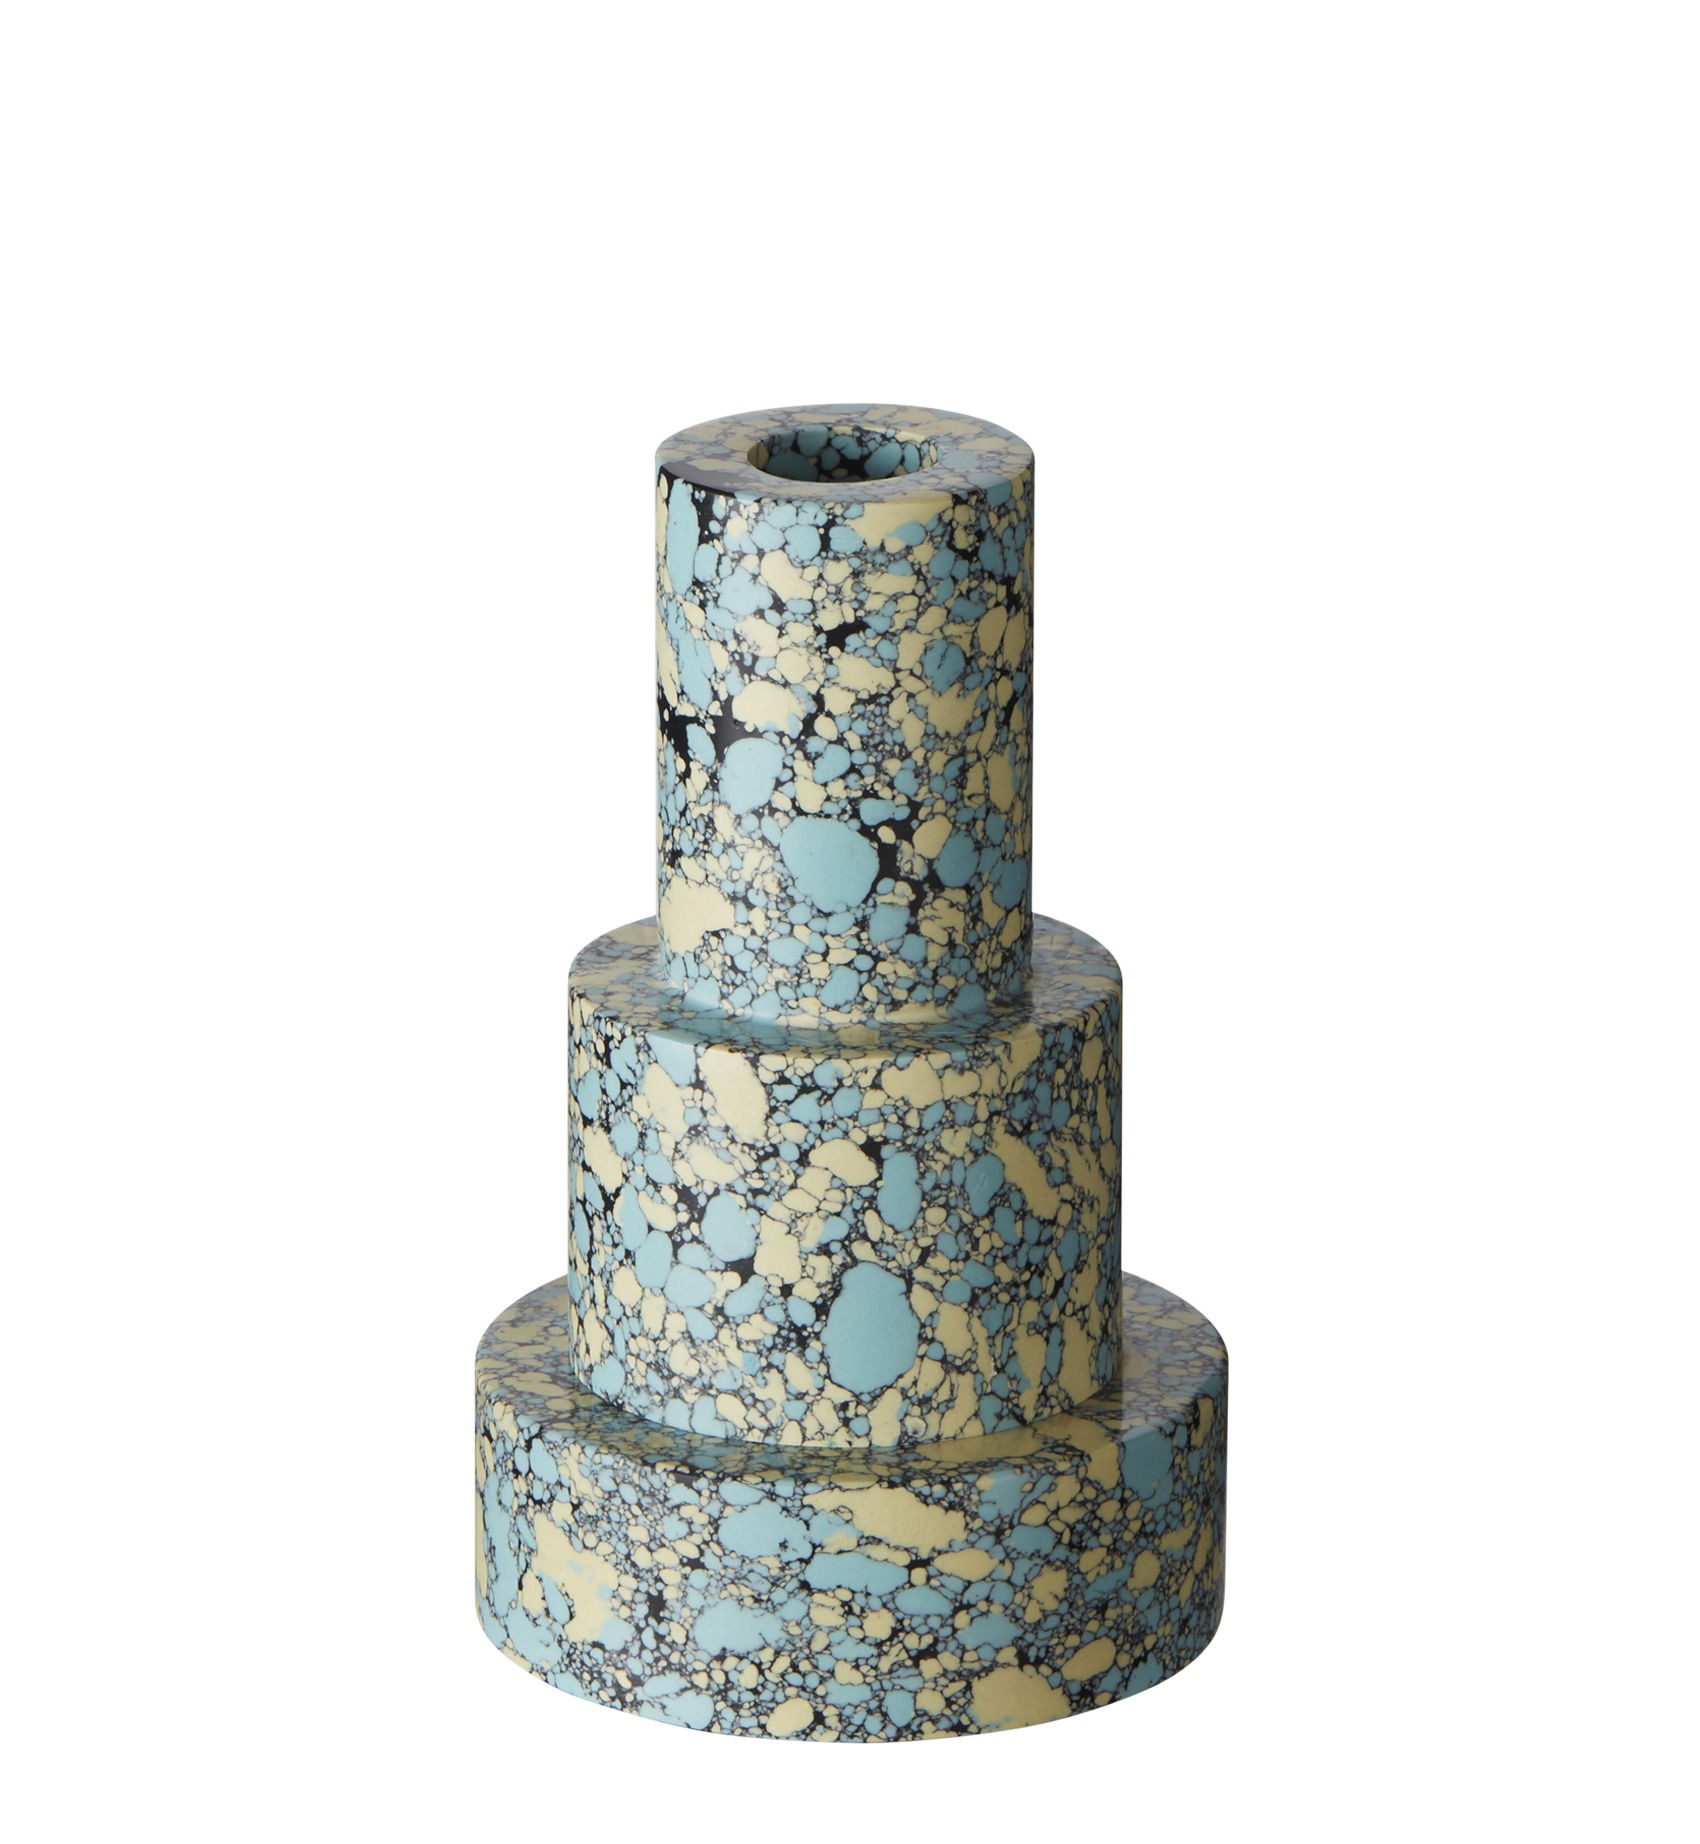 Decoration - Candles & Candle Holders - Swirl Stepped Candle stick - / Set of 2, stackable by Tom Dixon - Blue - Pigments, Recycled marble powder, Resin